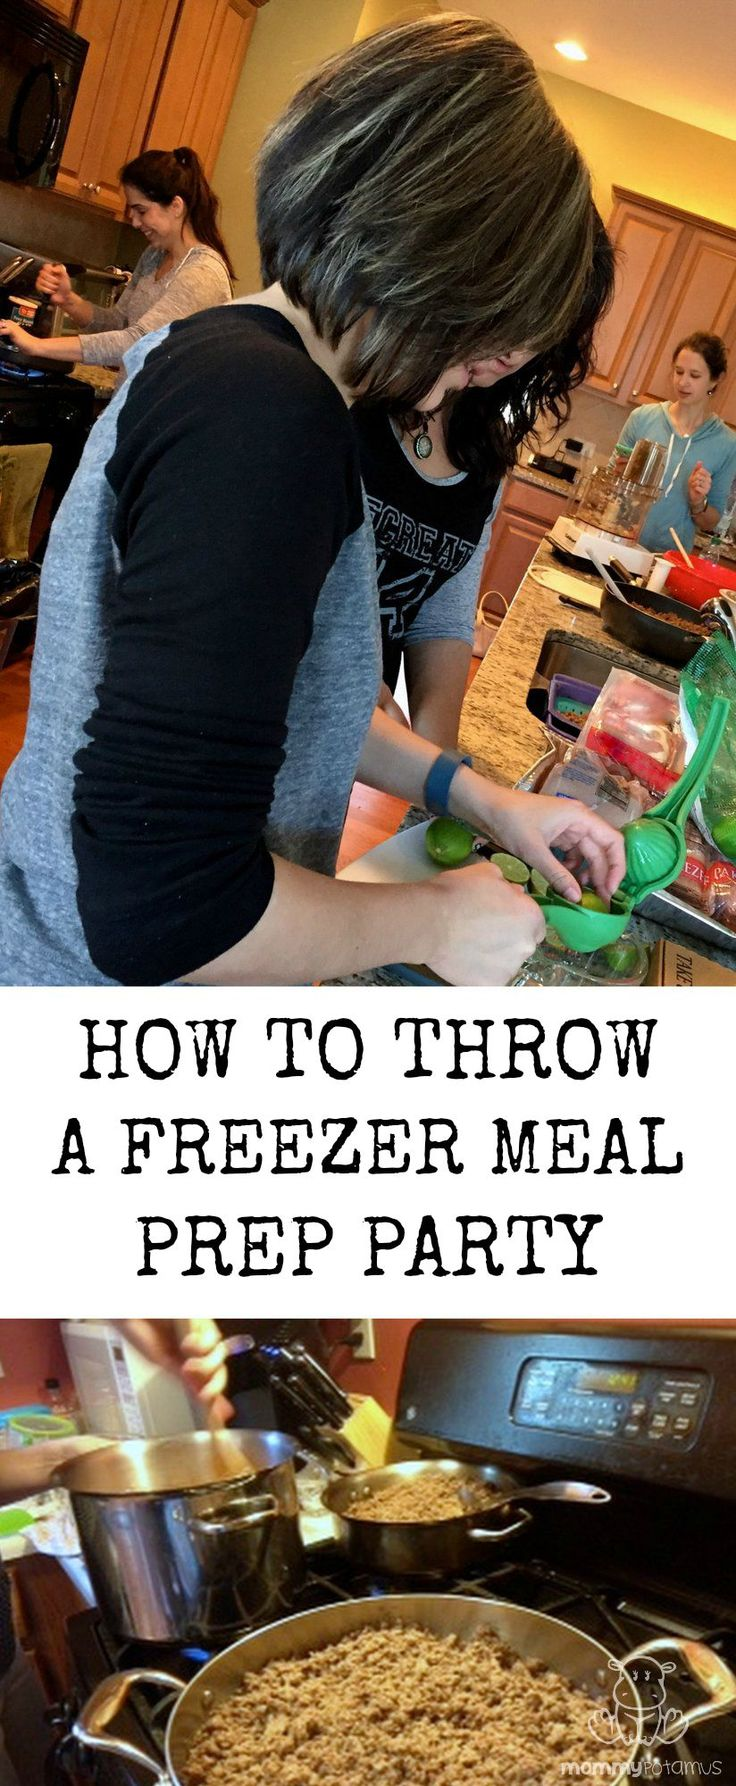 Ever wish you could take a week off from making dinner while still eating delicious, healthy food? Or maybe you prefer to have back-up meals for when life gets overwhelming?   This post shows you how to make that happen WHILE having fun with friends.